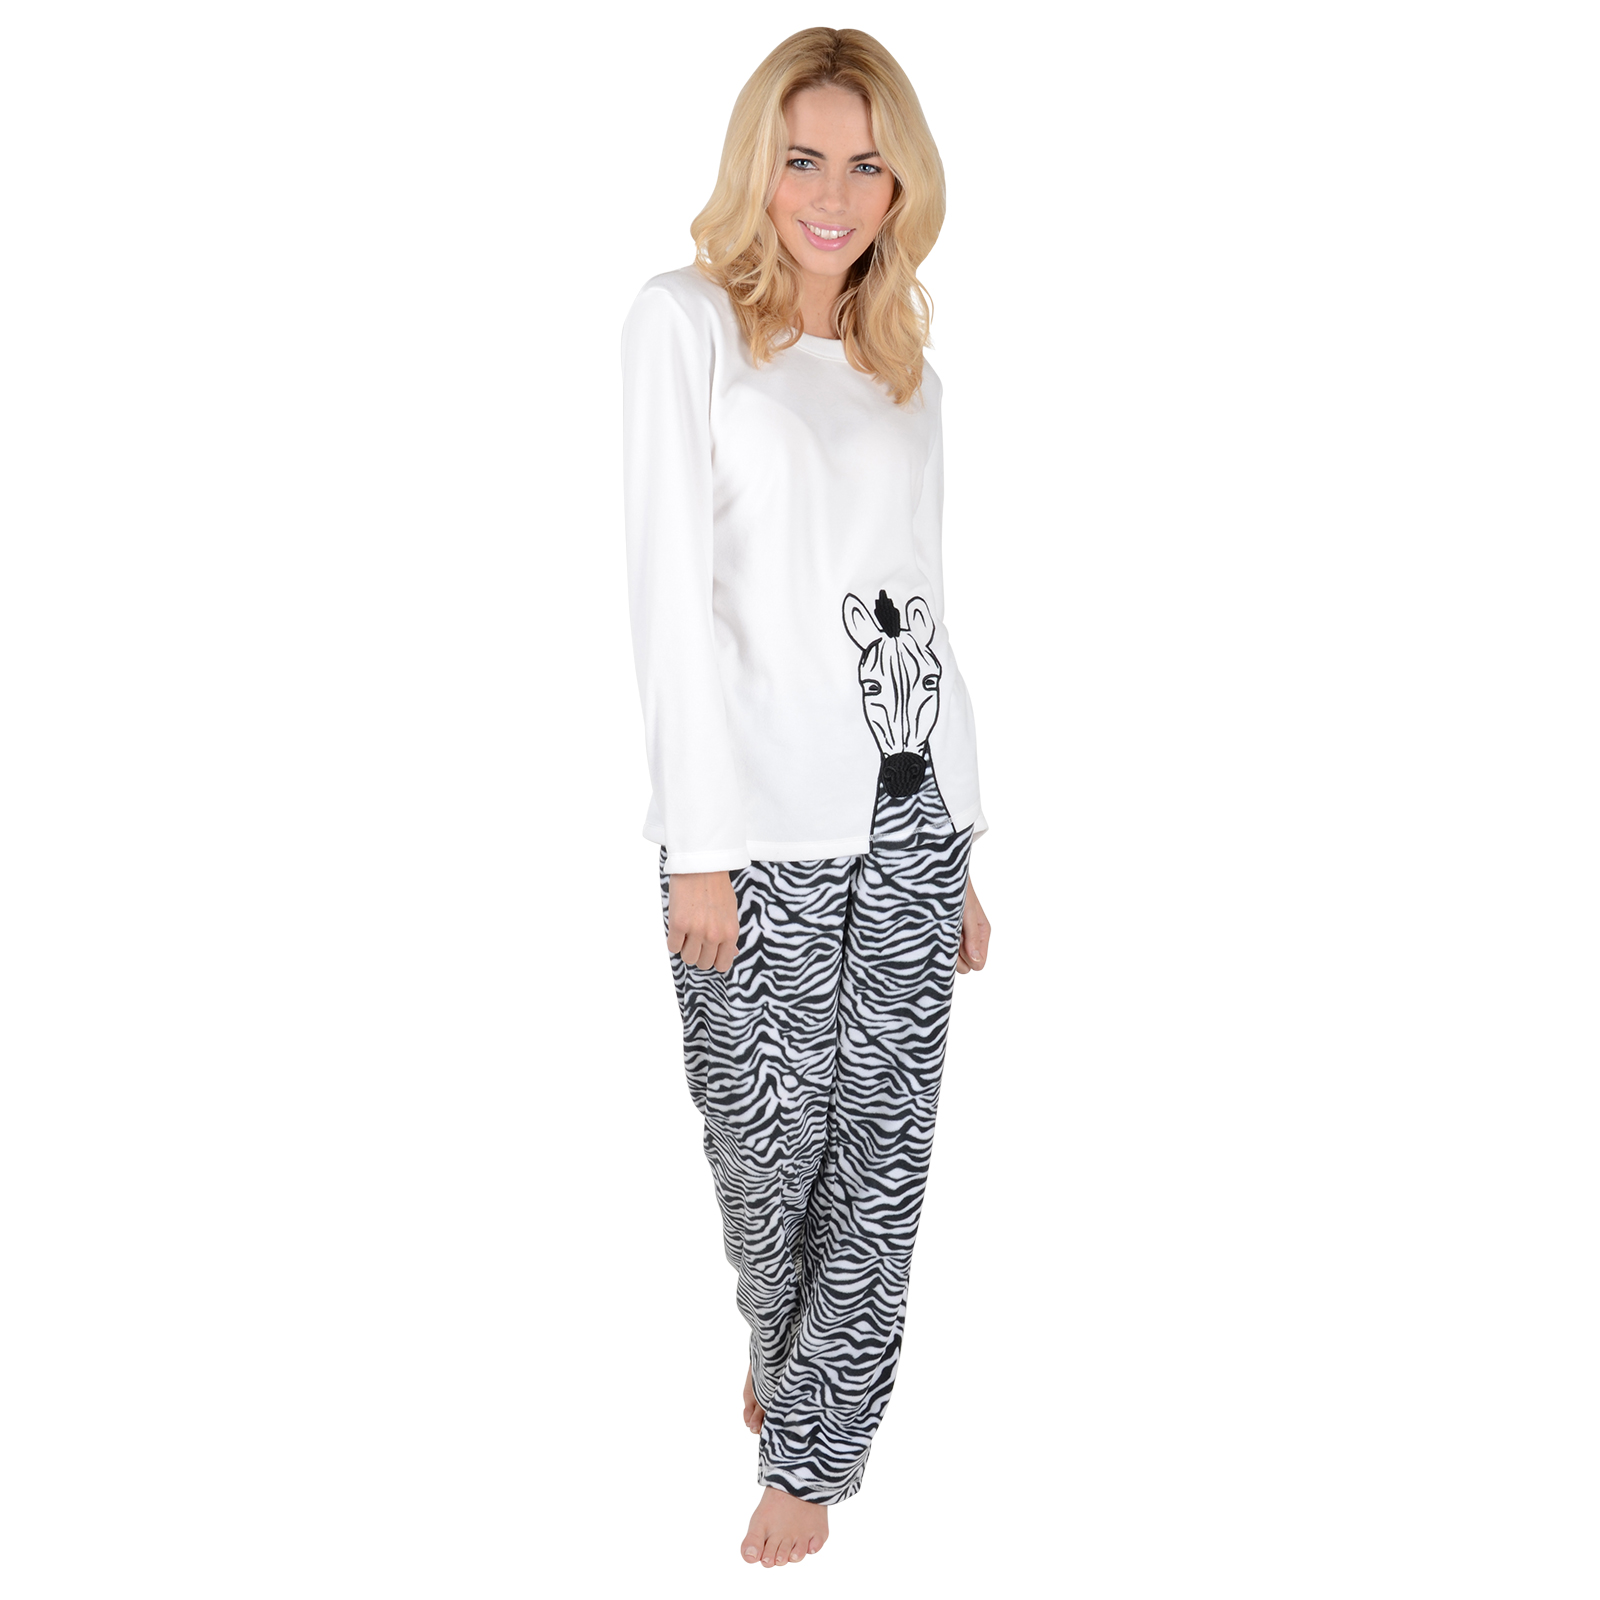 From sleeping to lounging around on a lazy Sunday morning, womens pyjama bottoms let you do it in style and comfort. Shop womens pyjama shorts in lots of colors and prints. Black Blue Brown Gray Multi Pink Red White price size Regular Bottoms (size).